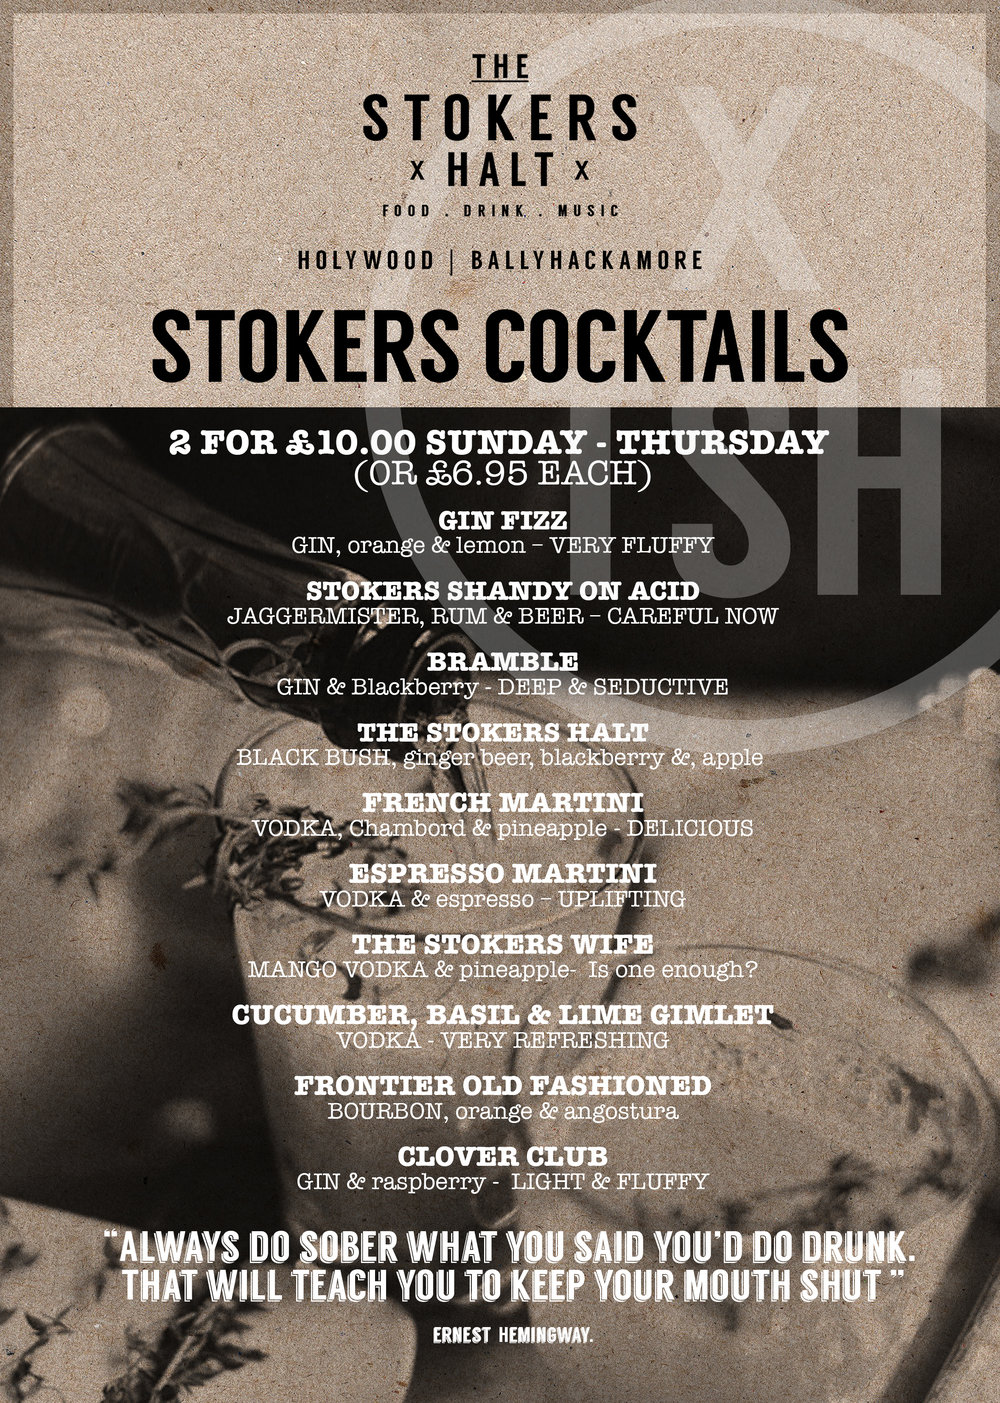 STOKERS MENU COCKTAILS MARCH 2017.jpg